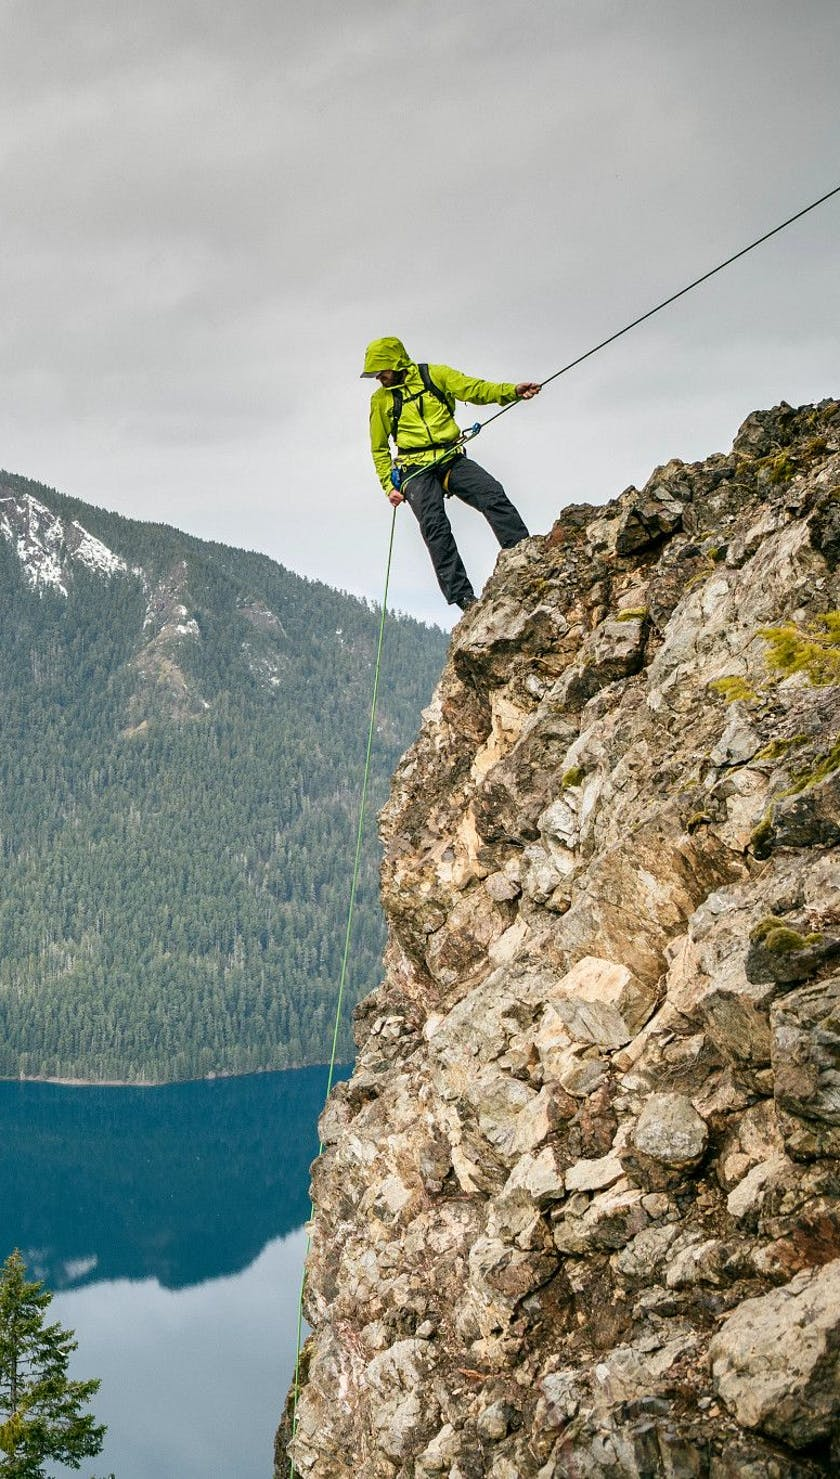 A man repelling while wearing the Stormline Stretch Rain Shell